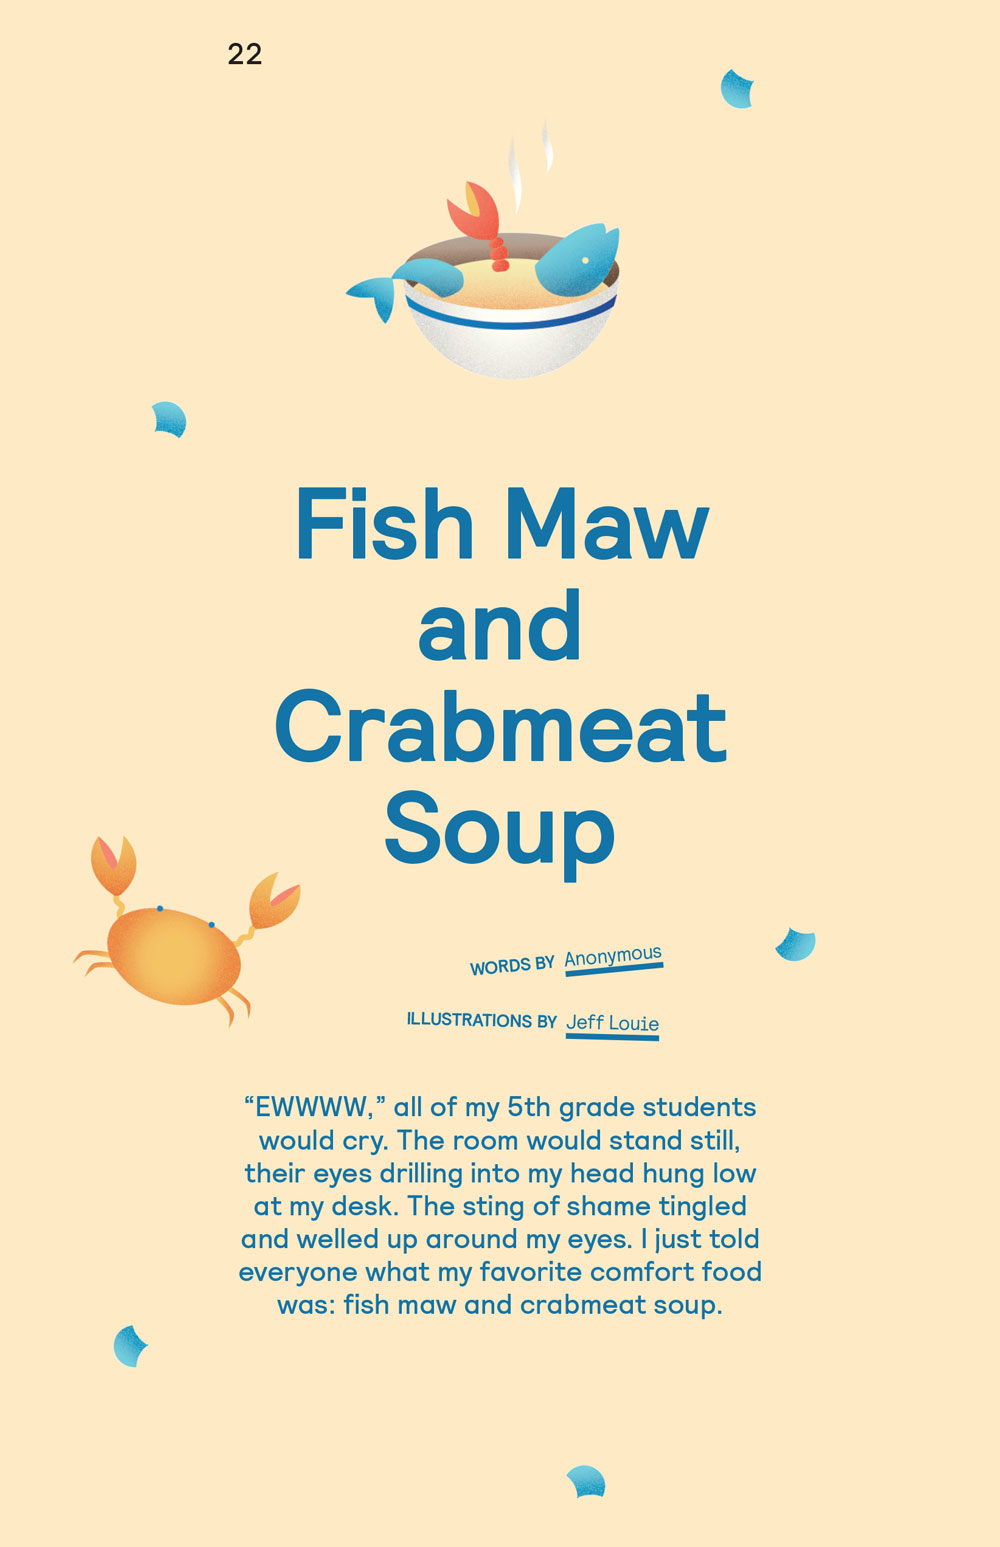 Fish Maw and Crabmeat Soup by Anonymous (p. 1) - AMPLIFY(HER)